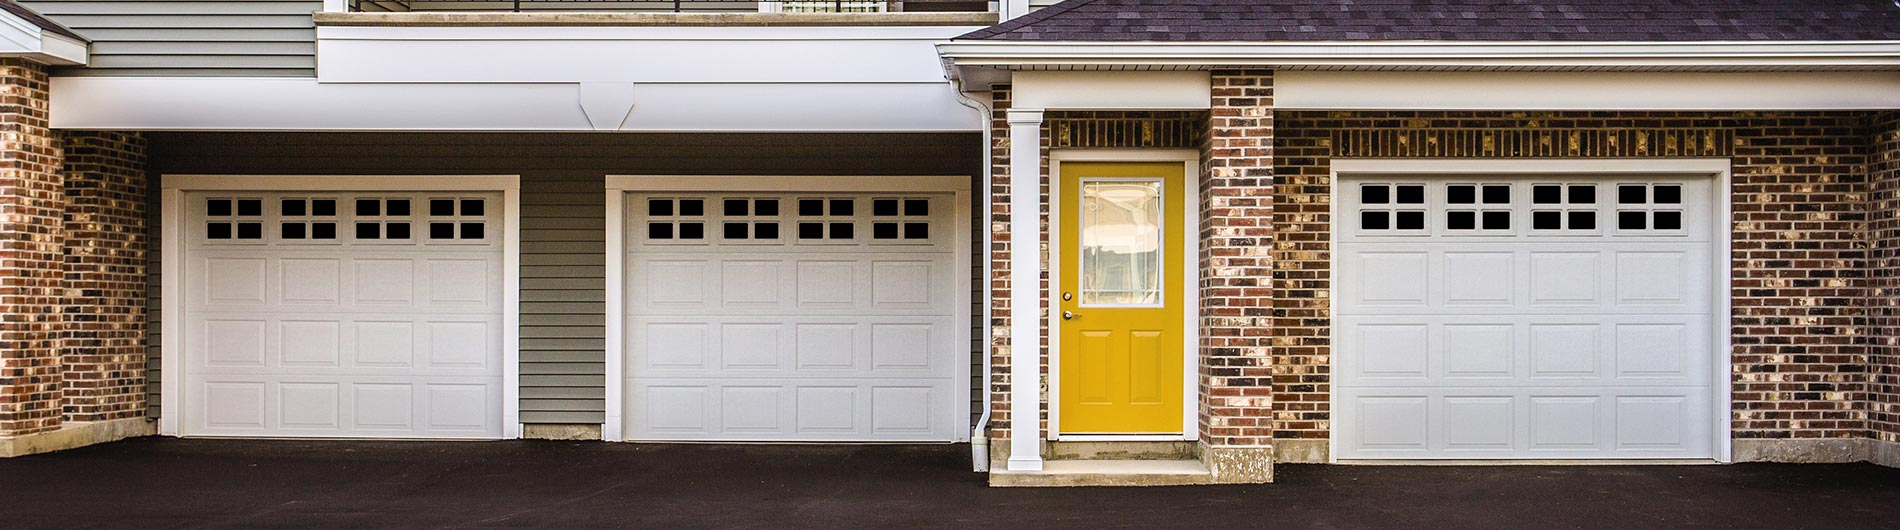 9100-9605-Steel-Garage-Door-Colonial-White-StockbridgeI